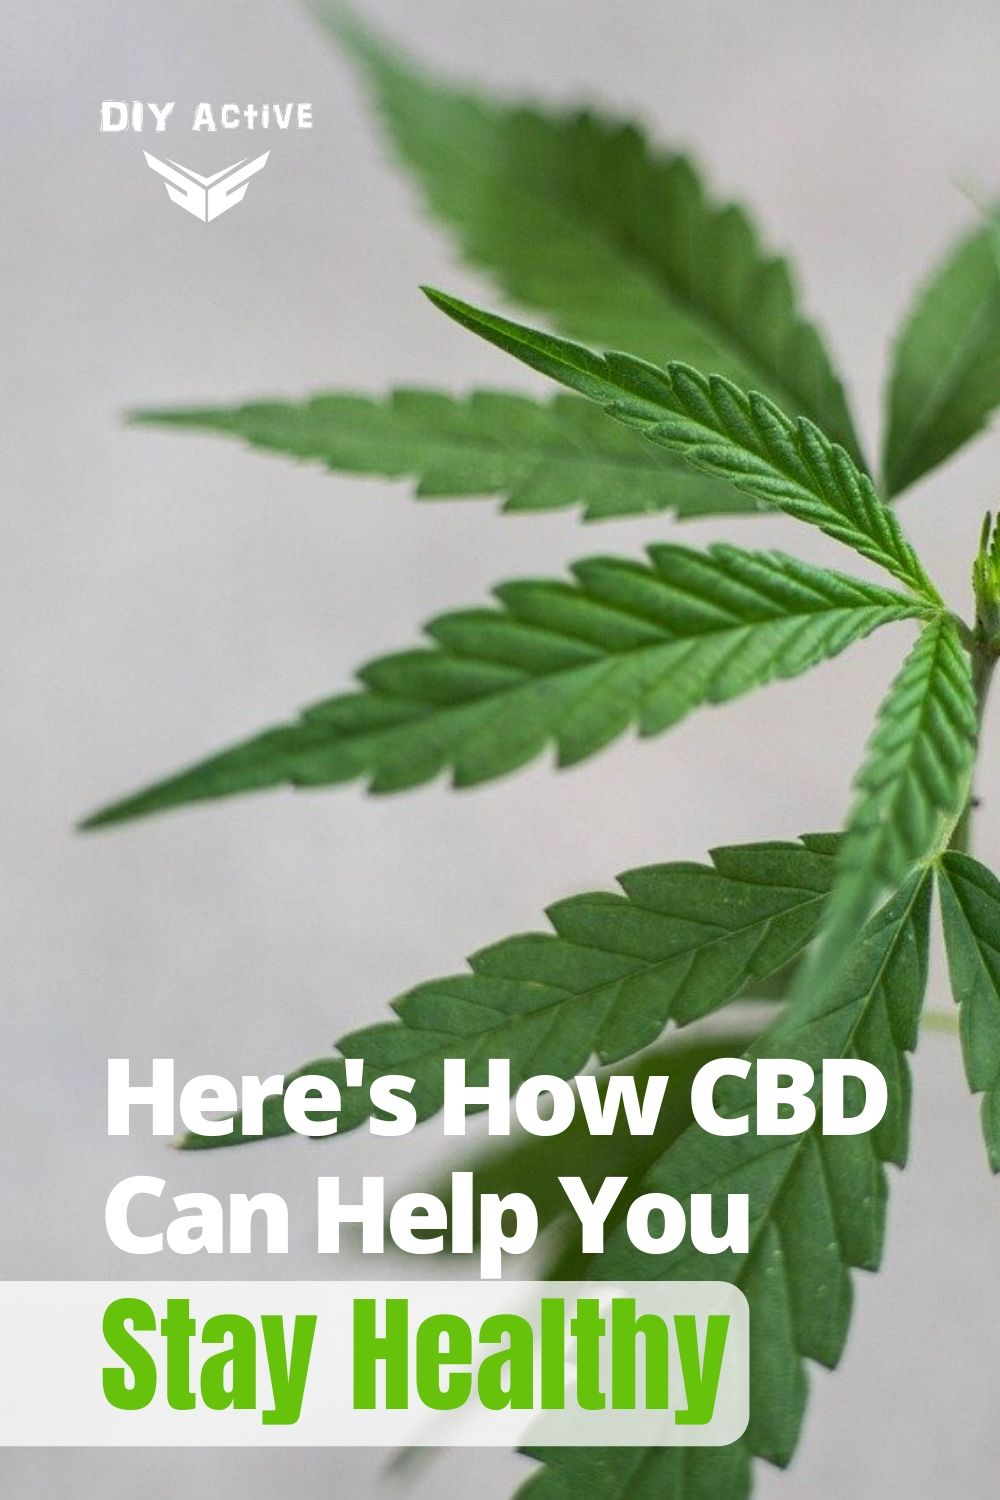 Here's How CBD Can Help You Stay Healthy and Active